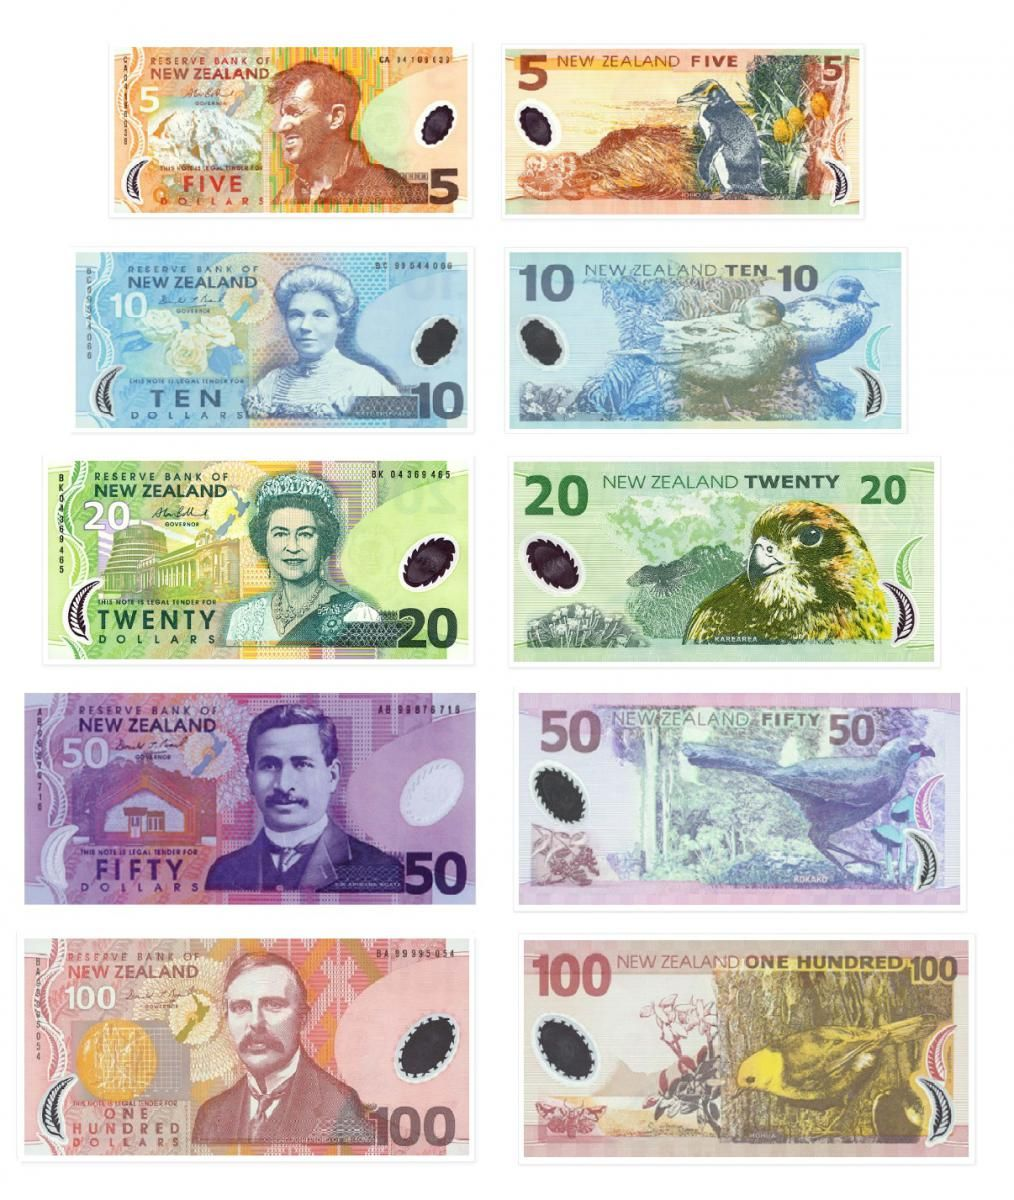 New Zealand Dollar Nzd Currency Images More Money